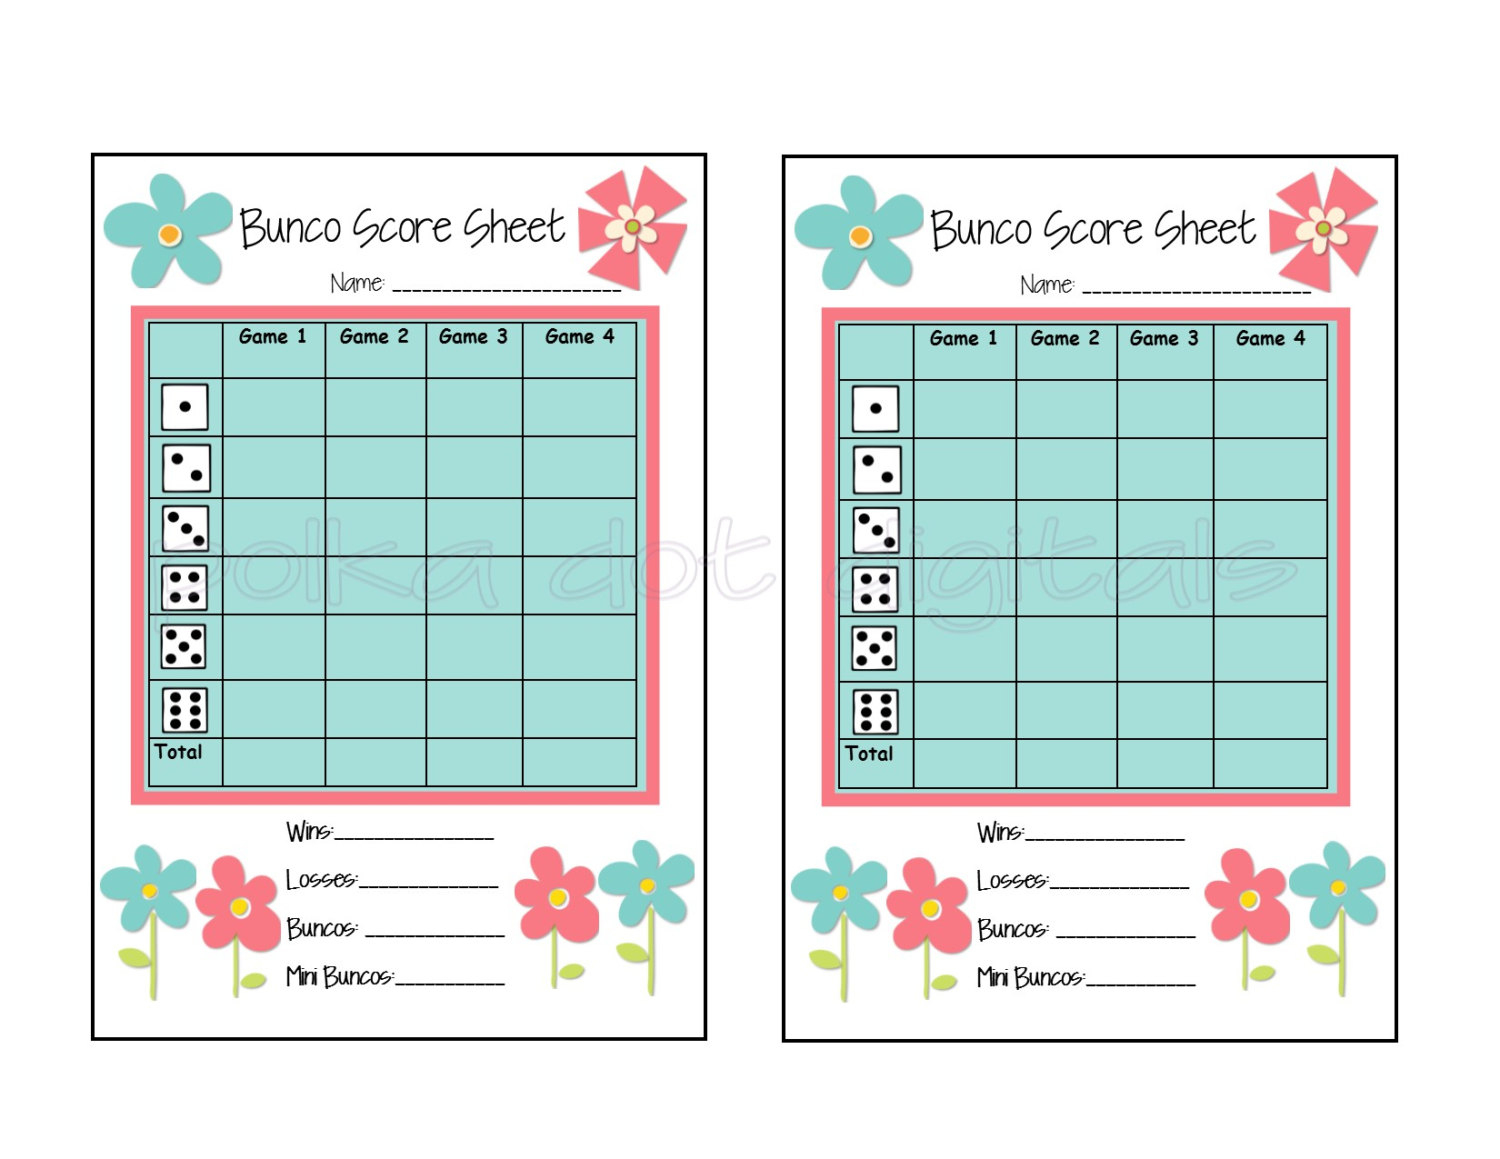 98+ This Is The Bunco Score Sheet Download Page You Can Free - Free Printable Bunco Game Sheets